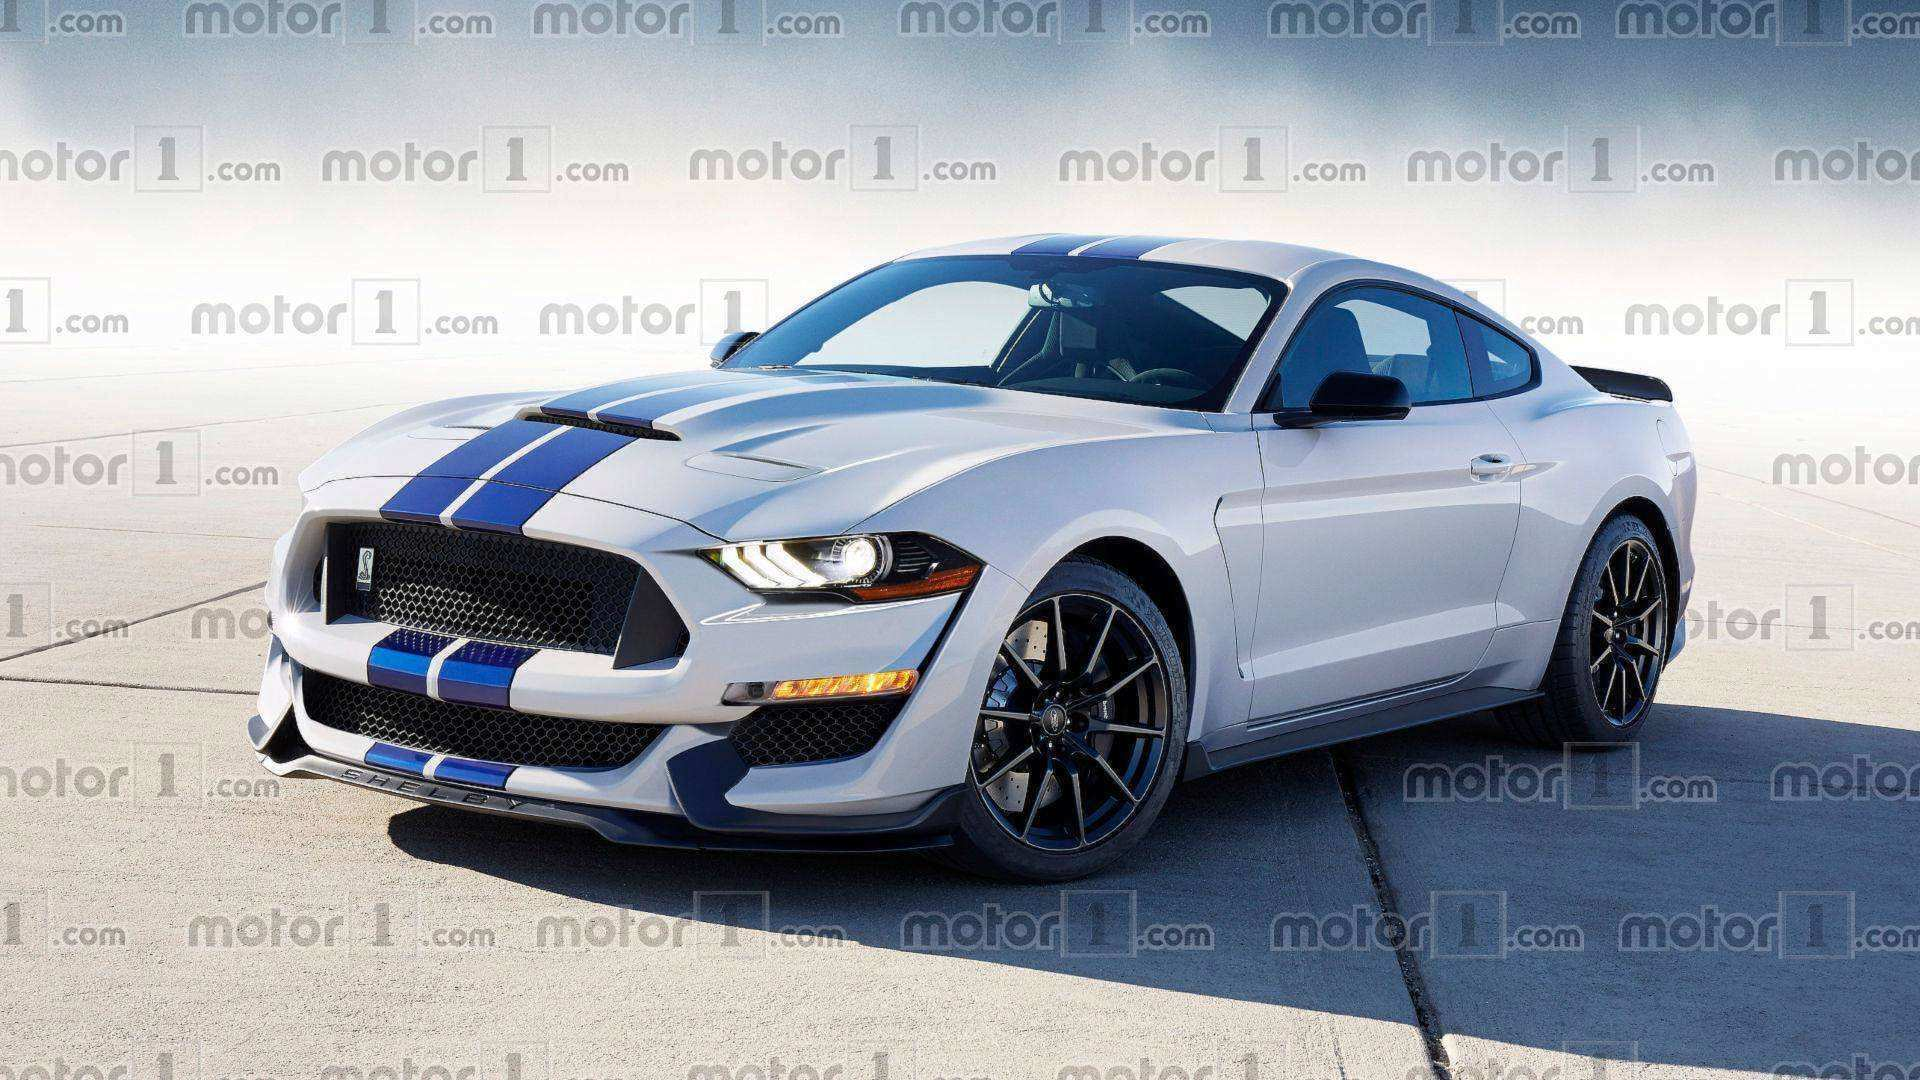 90 A Ford Gt500 Shelby 2020 Review And Release Date